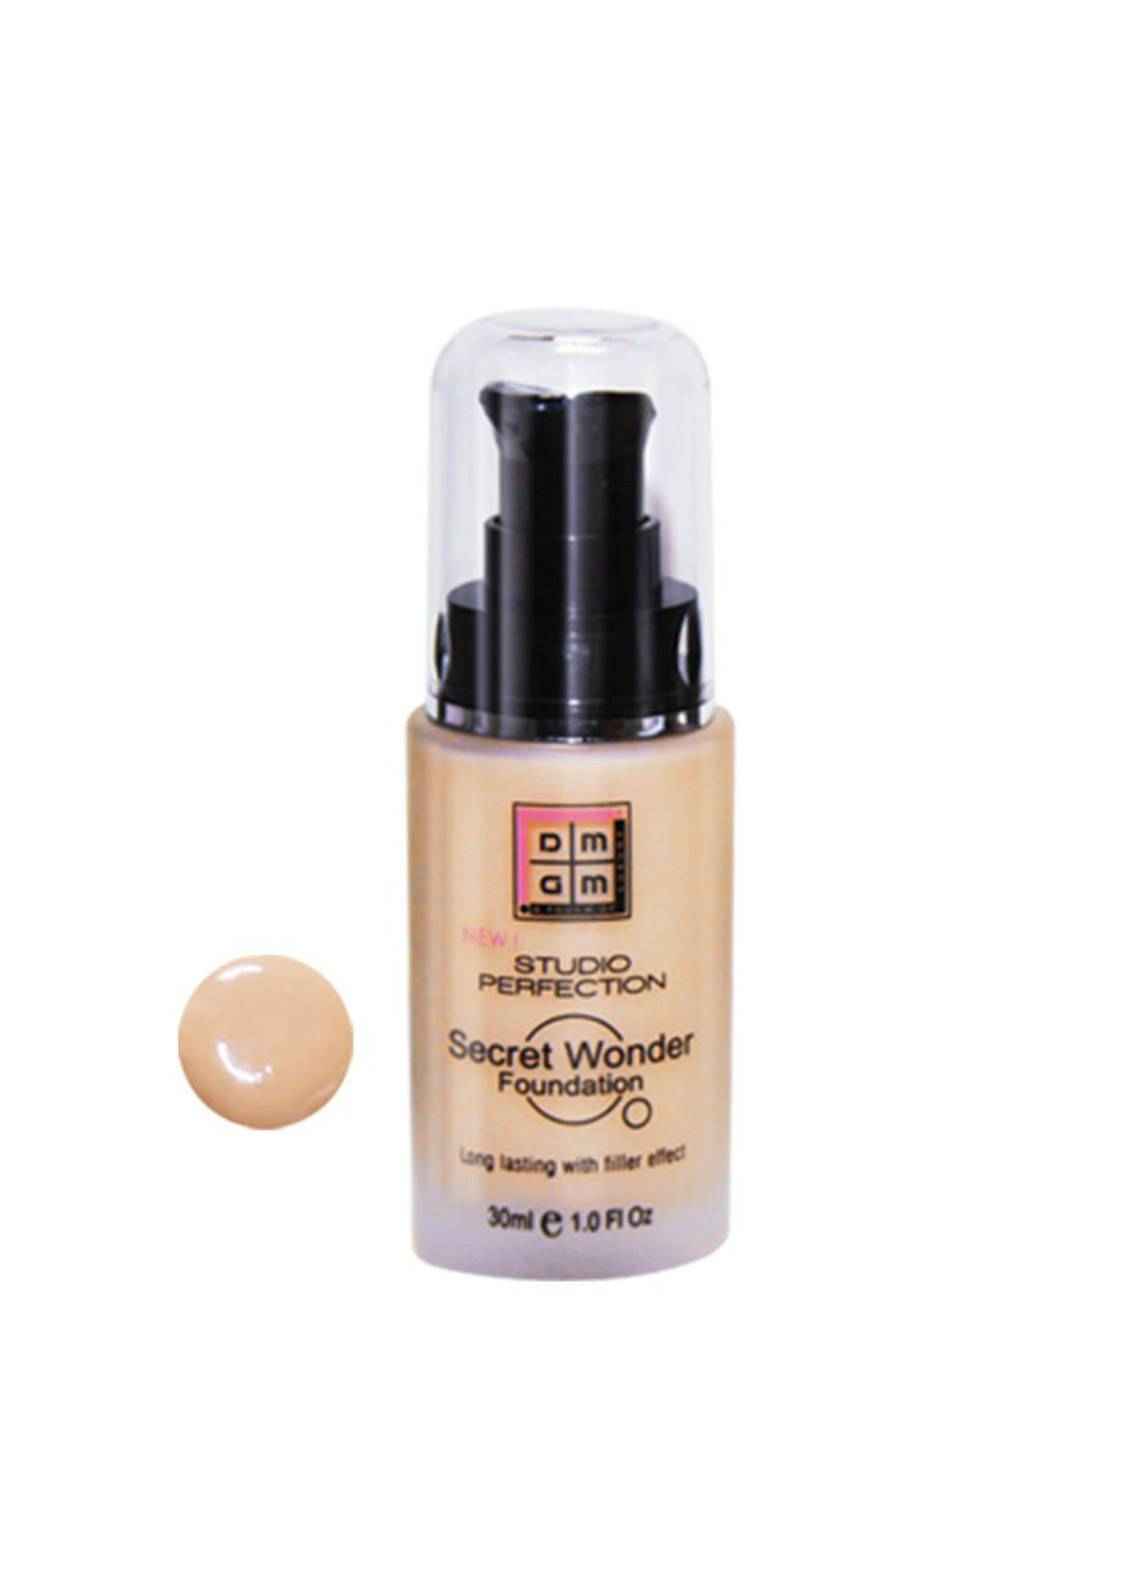 DMGM Studio Perfection Secret Wonder Foundation - Sesame-220